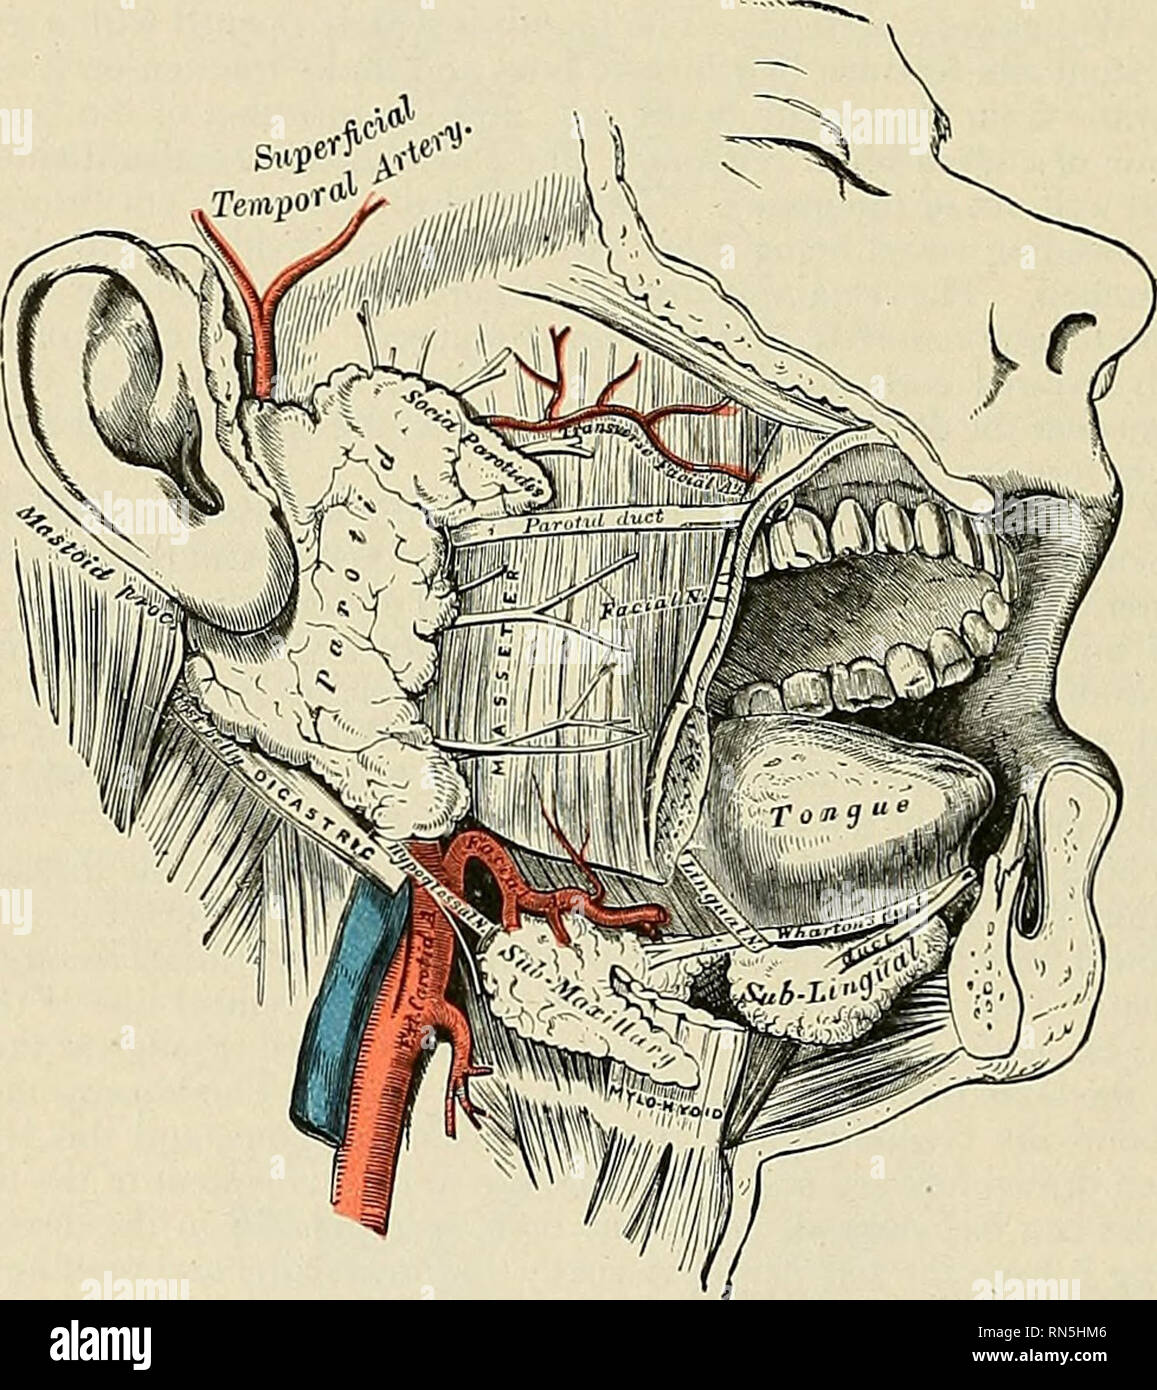 . Anatomy, descriptive and applied. Anatomy. 1224 THE ORGANS OF DIGESTION toid process to the angle of the mandible. The remainder of the gland is wedge- shaped, and extends deeply inward toward the pharyngeal wall. The gland is enclosed within a capsule continuous with the deep cervical fascia; the layer covering the outer surface is dense and closely adherent to the gland; a portion of the fascia, attached to the styloid process and the angle of the mandible, is thickened to form the stylomandibular ligament which intervenes between the parotid and submaxillary glands. The anterior surface o - Stock Image